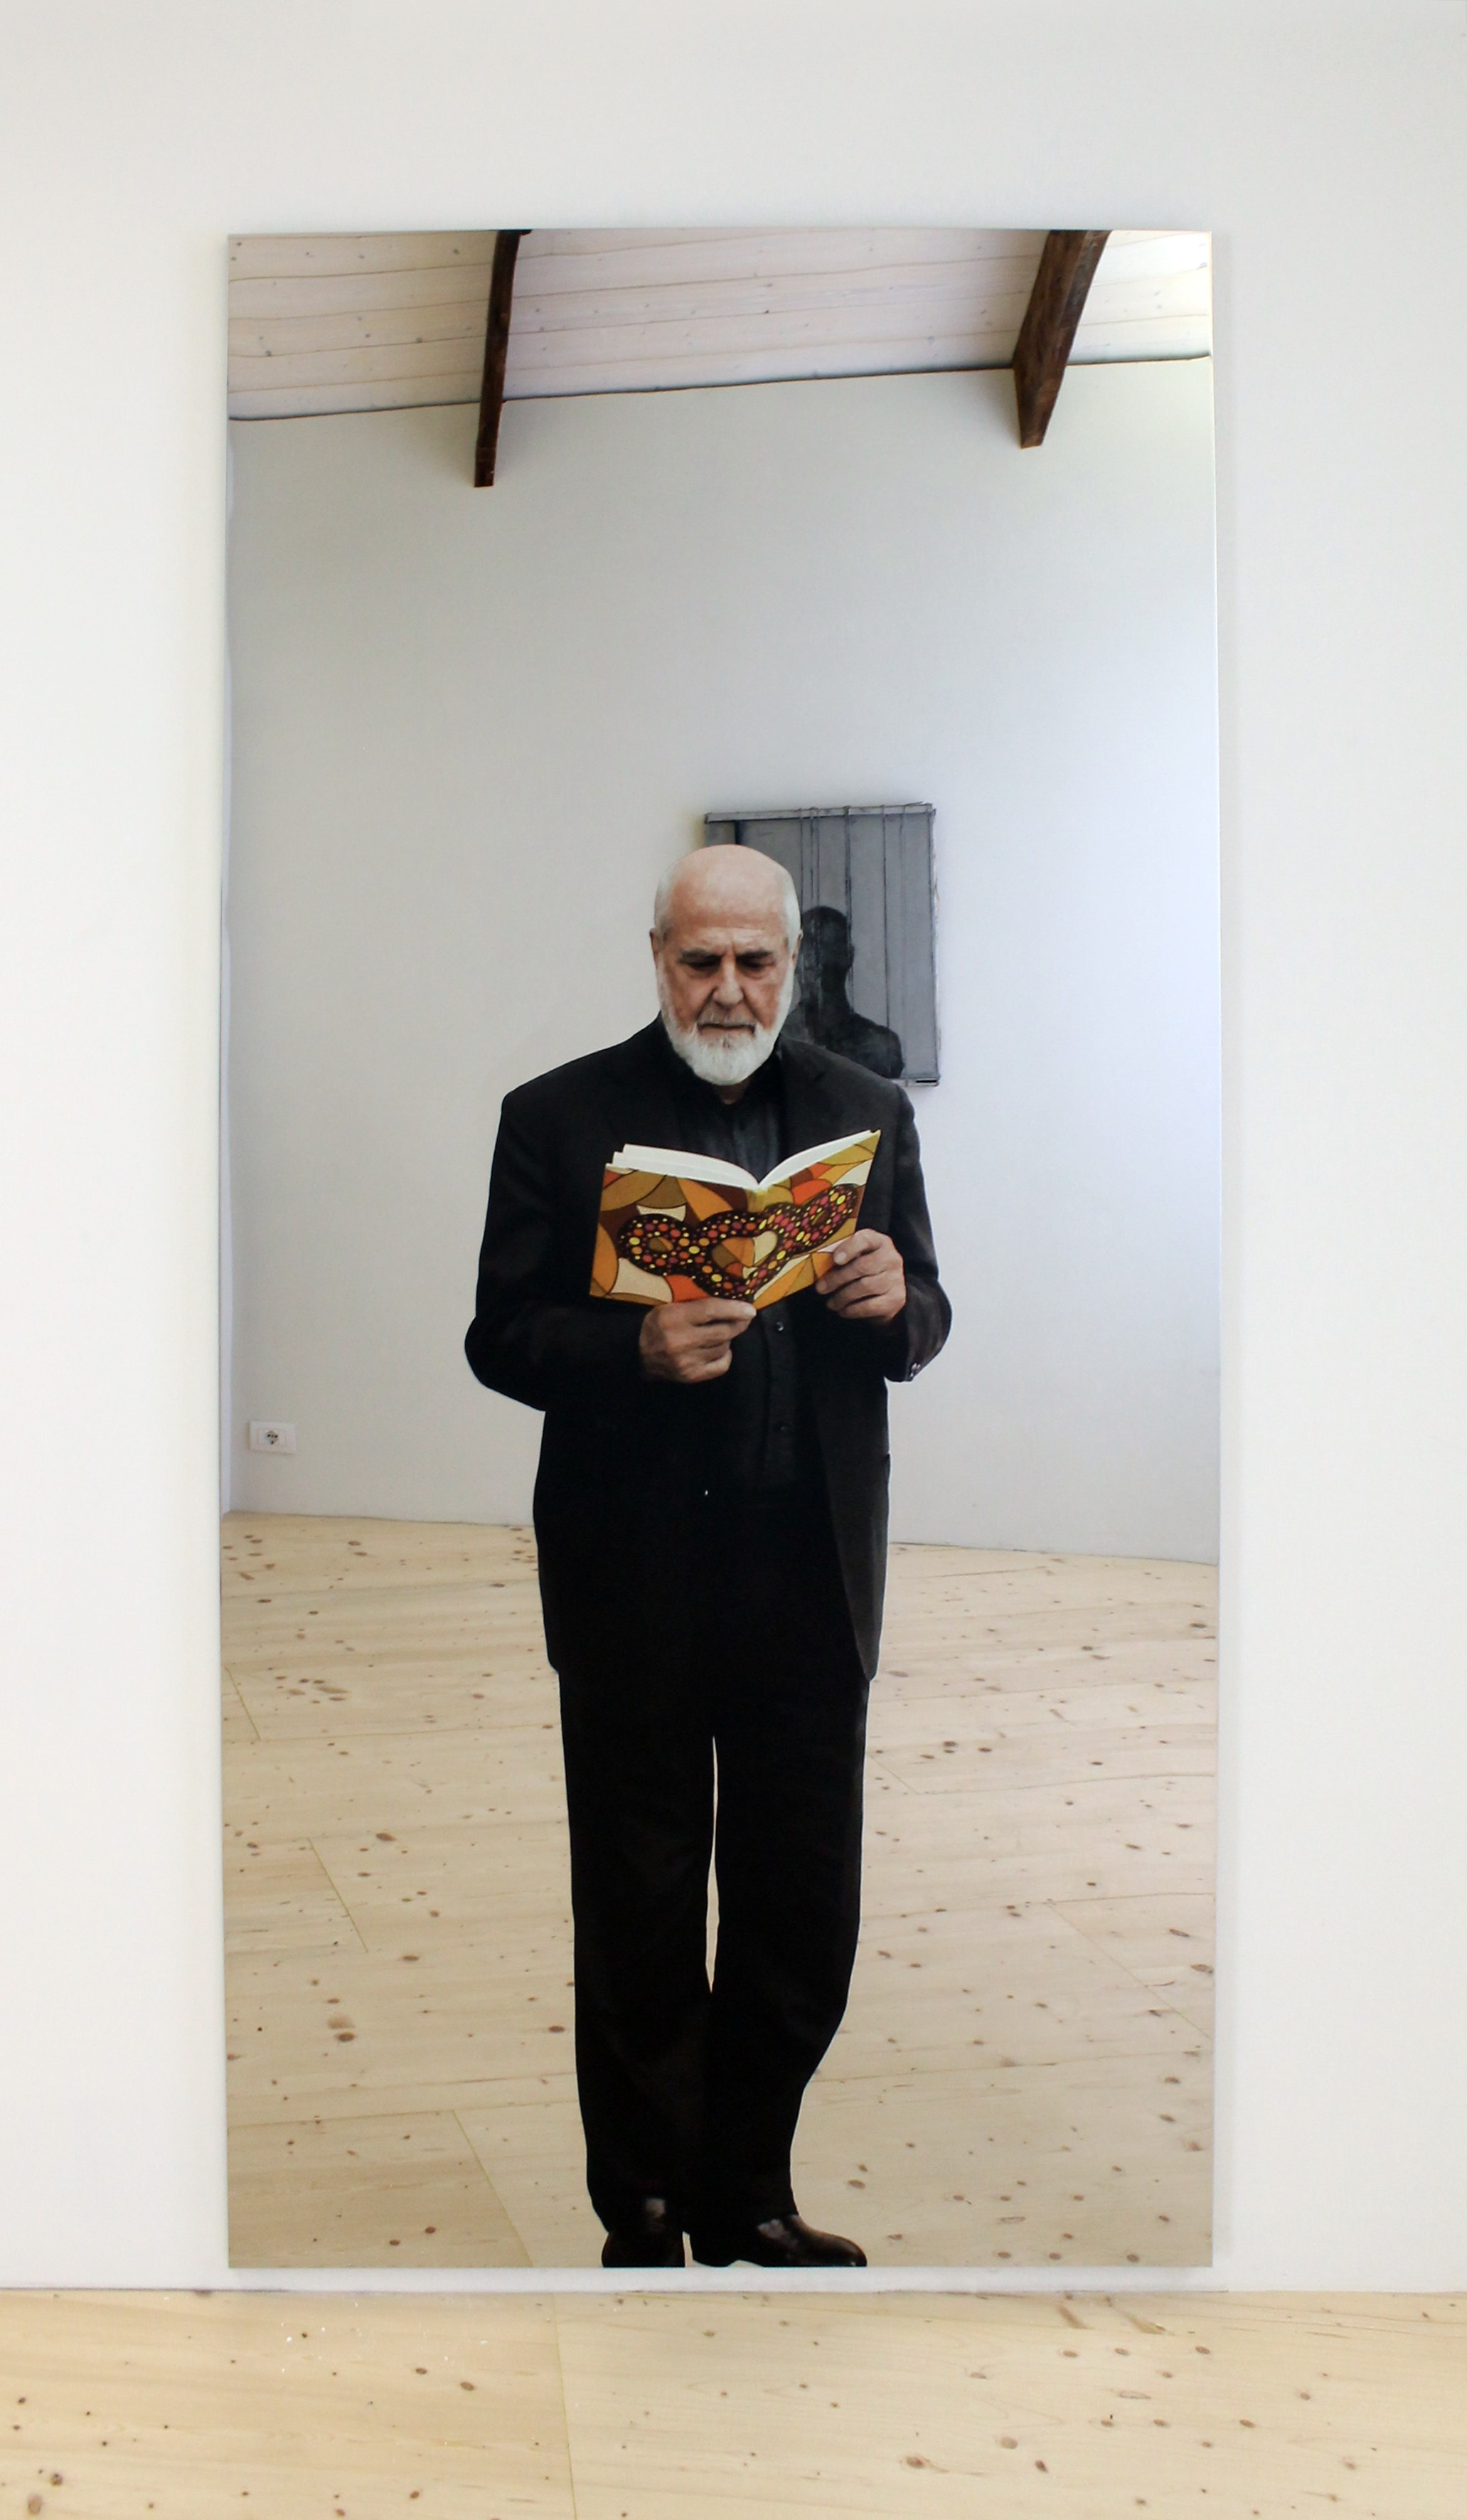 Michelangelo Pistoletto, Autoritratto con quaderno Terzo Paradiso, 2017  Credit photo: A. Lacirasella